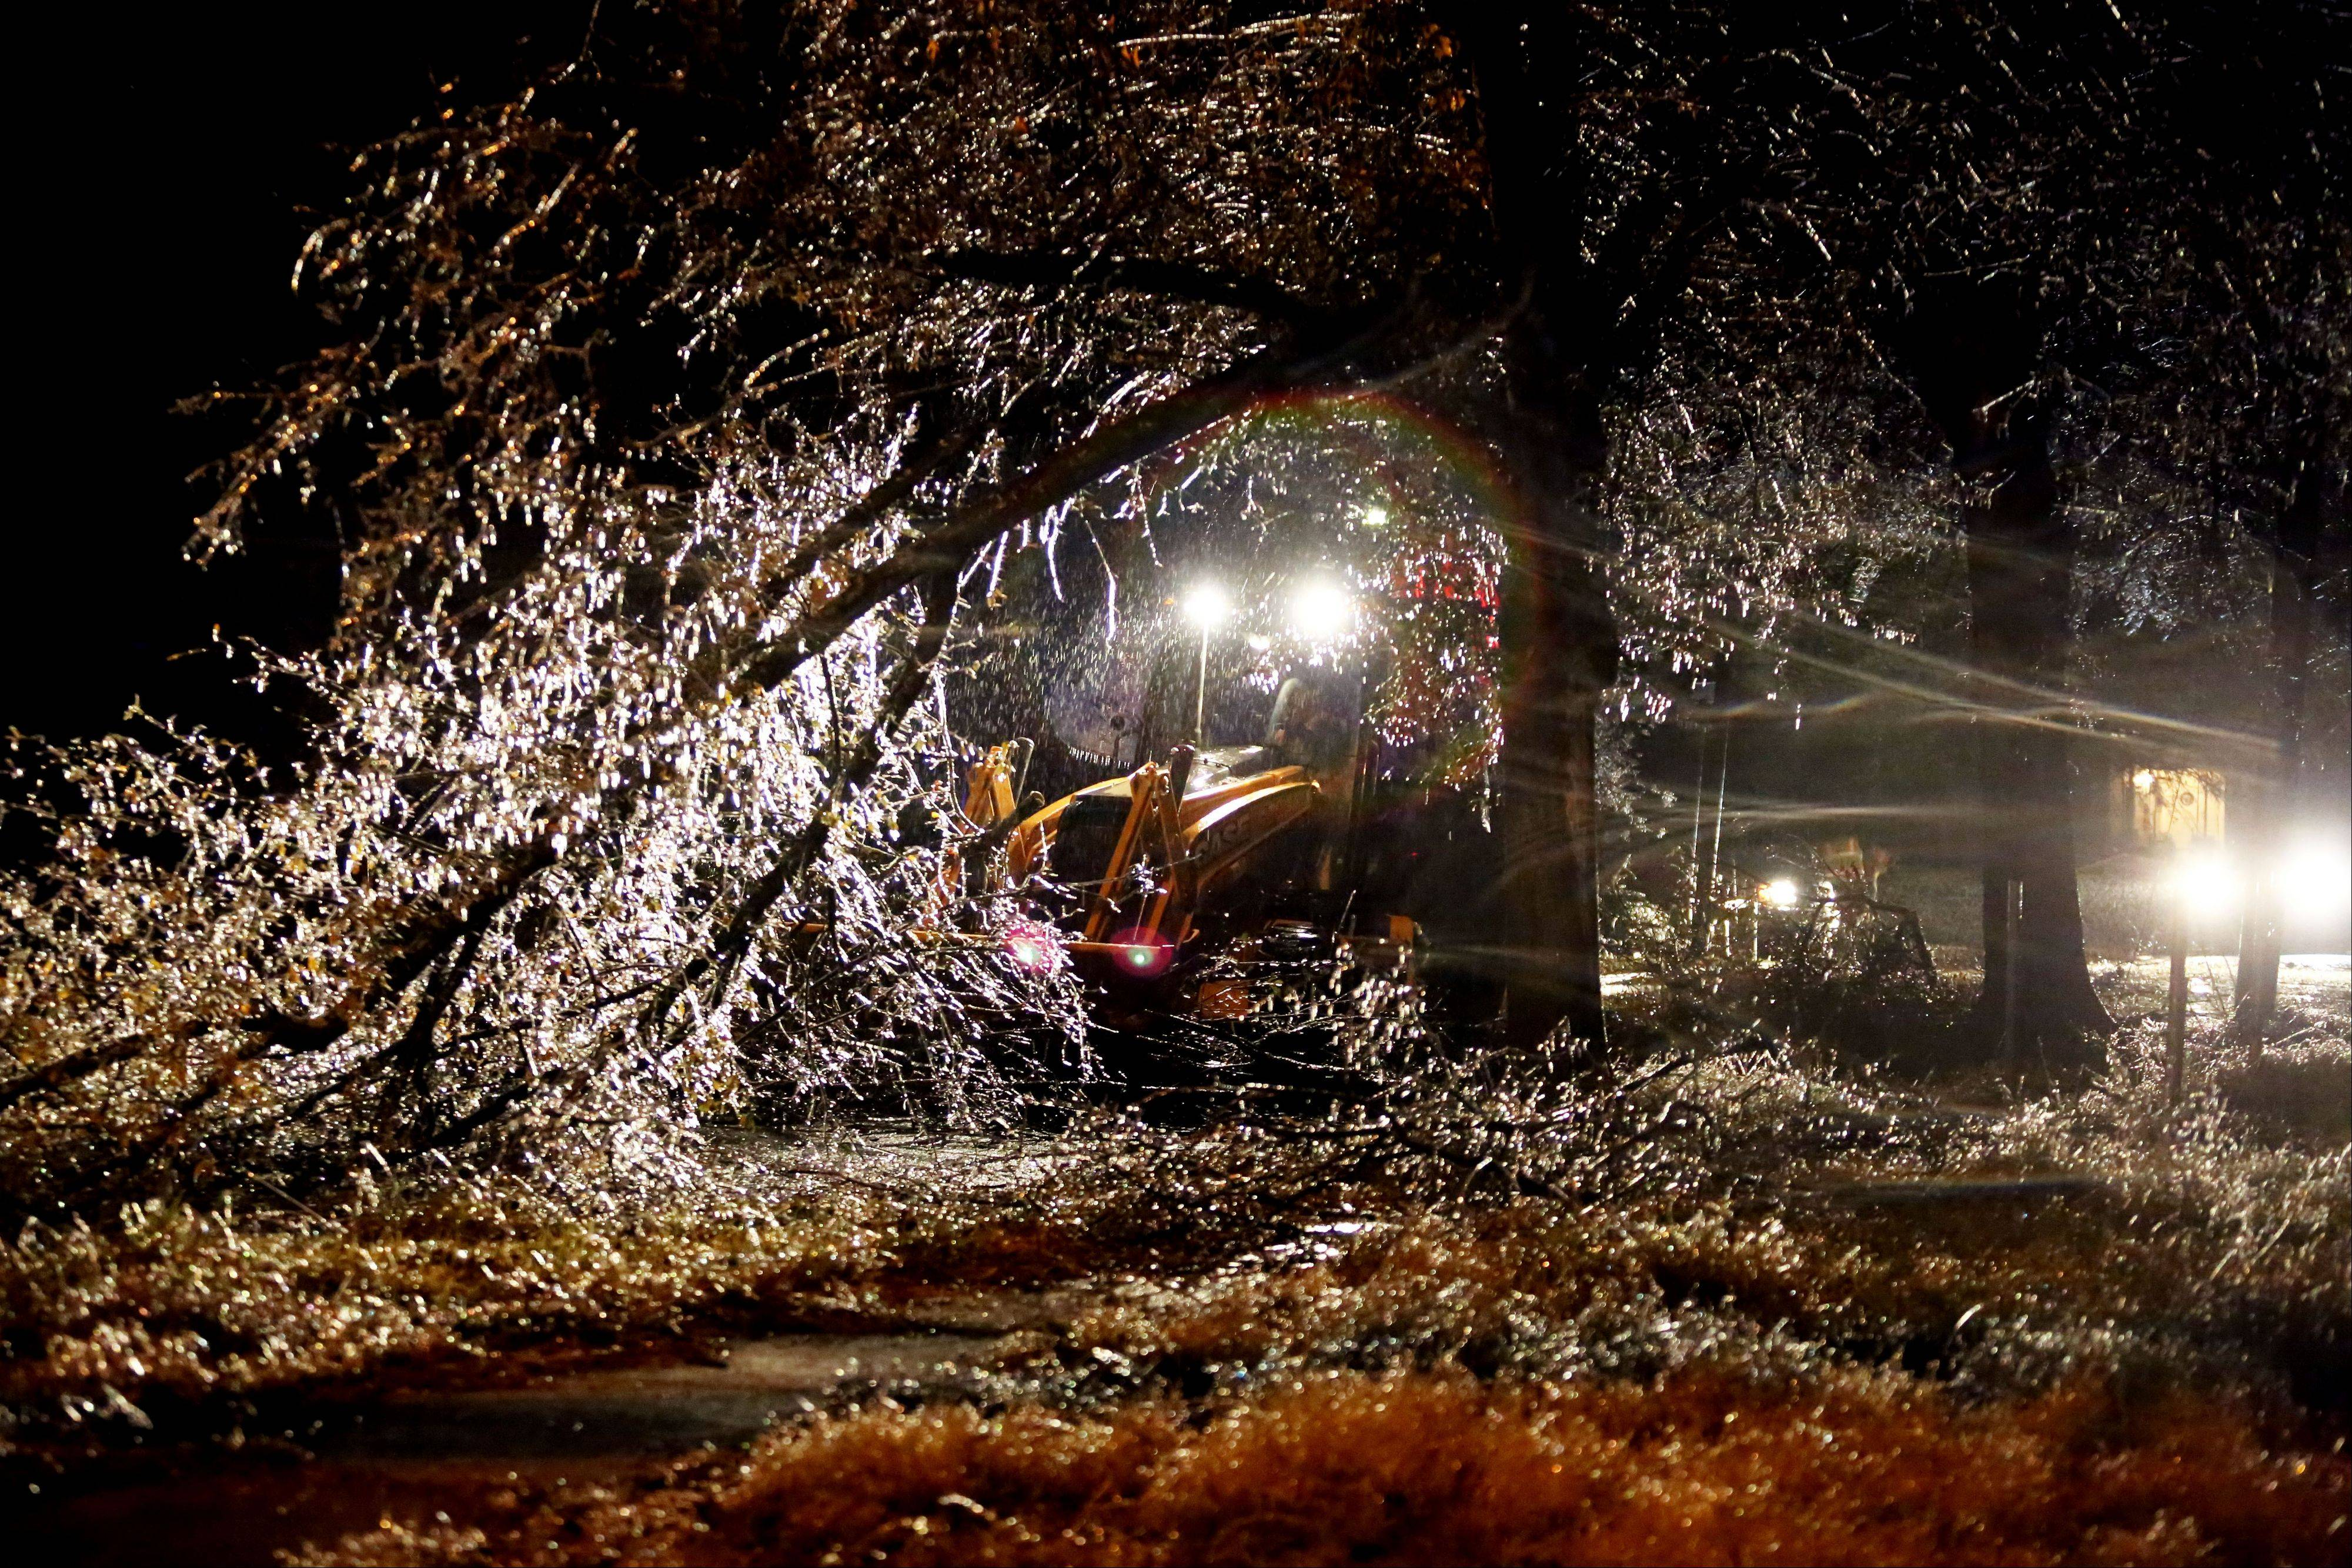 City of Paris Street Department employees use clear a large tree that fell blocking a road. A winter storm moved into North East Texas Friday, Dec. 6 2013 bringing with it freezing rain, ice and temperatures in the low 20�s.